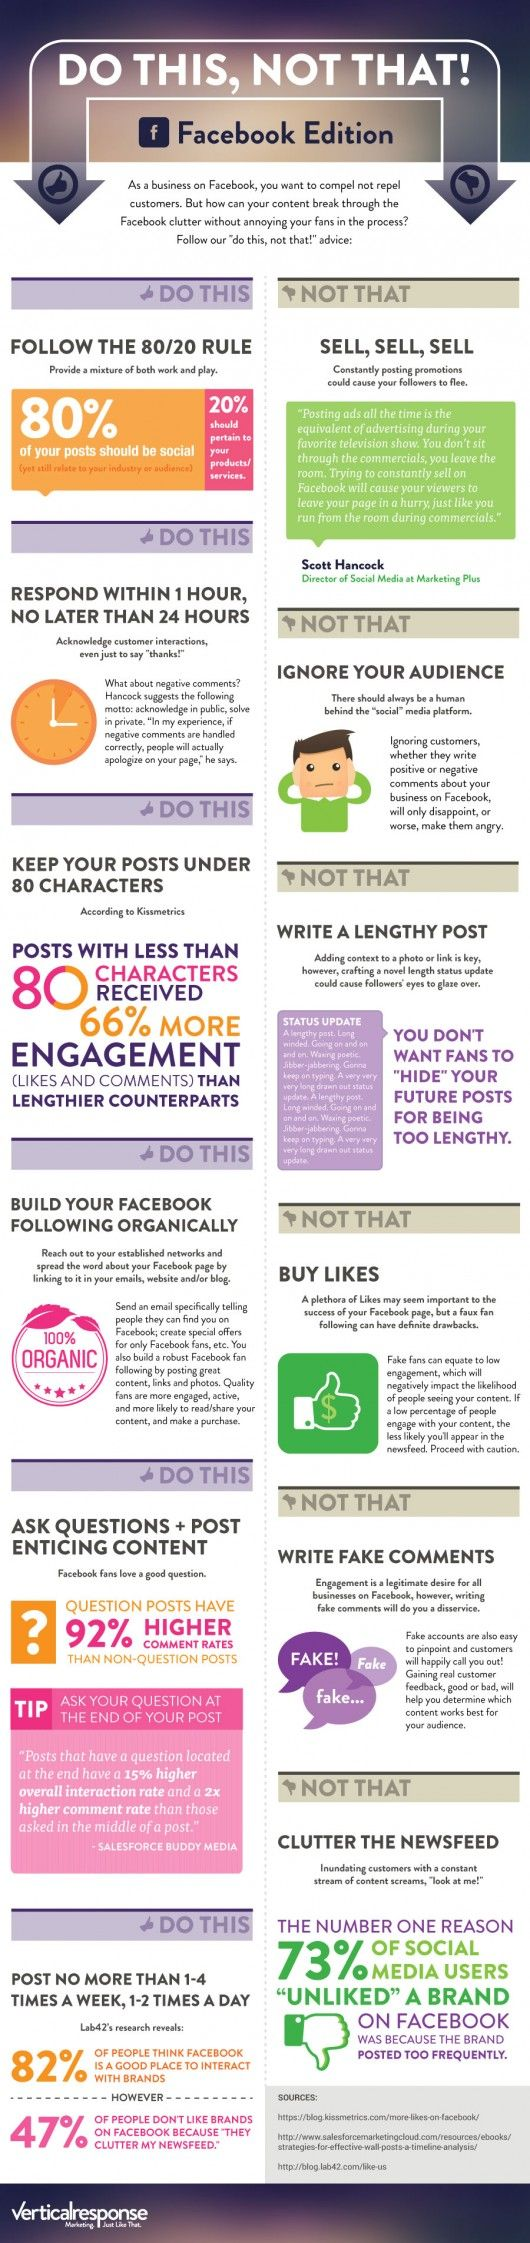 Facebook: Do's and Don'ts